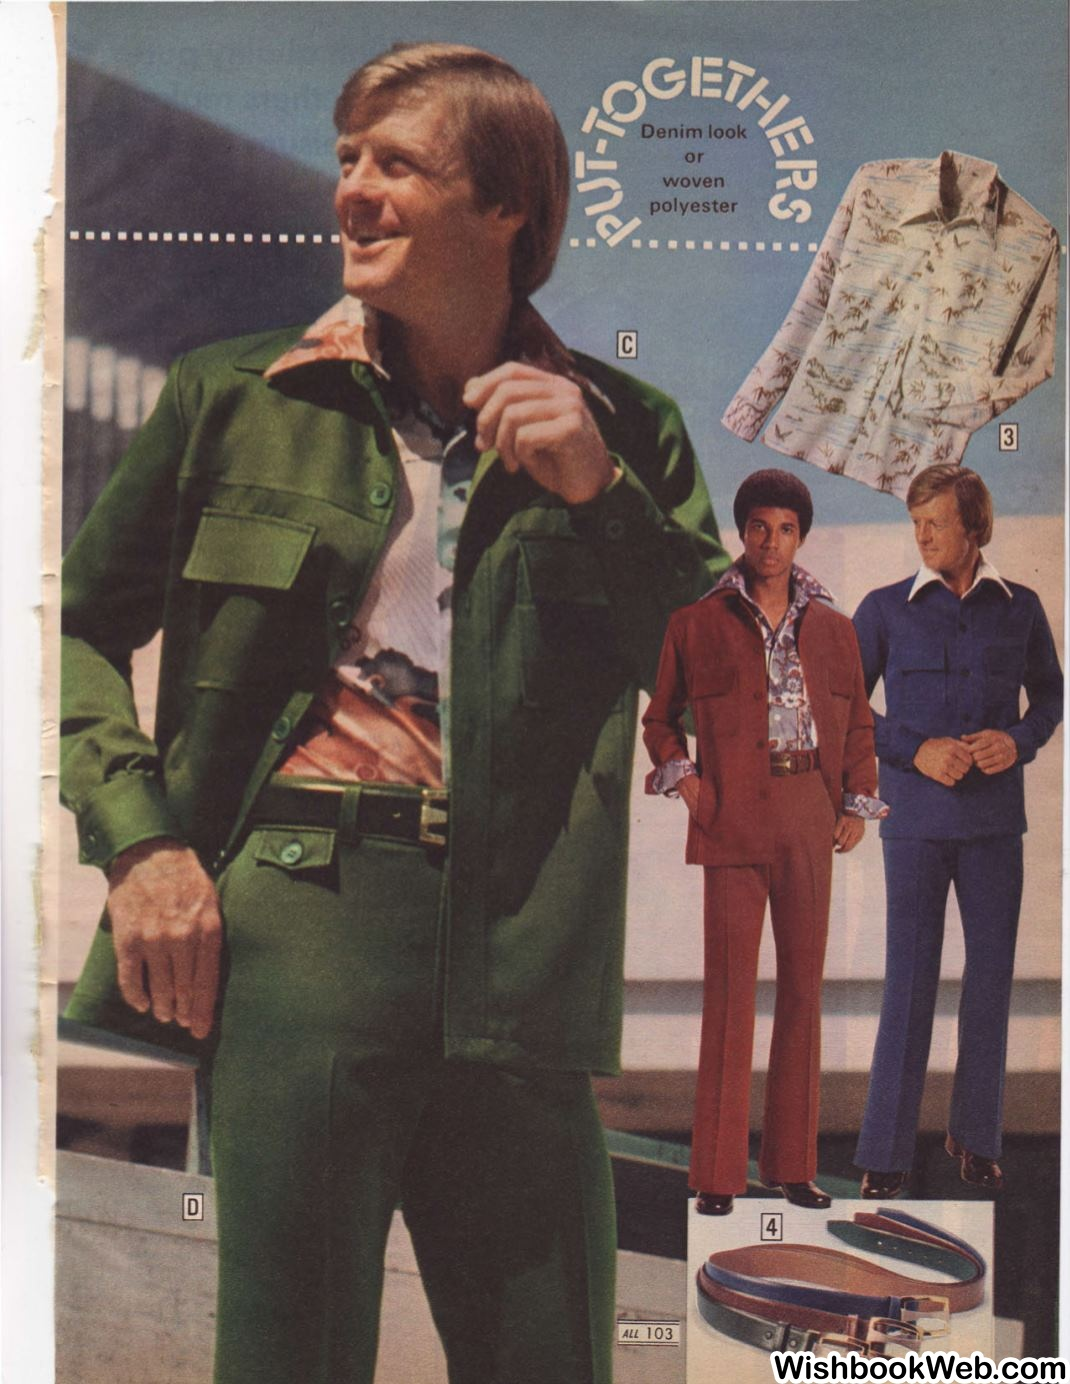 1970s Men s Fashion Ads You Won t Be Able To Unsee Bored Panda Mens fashion in the 1970